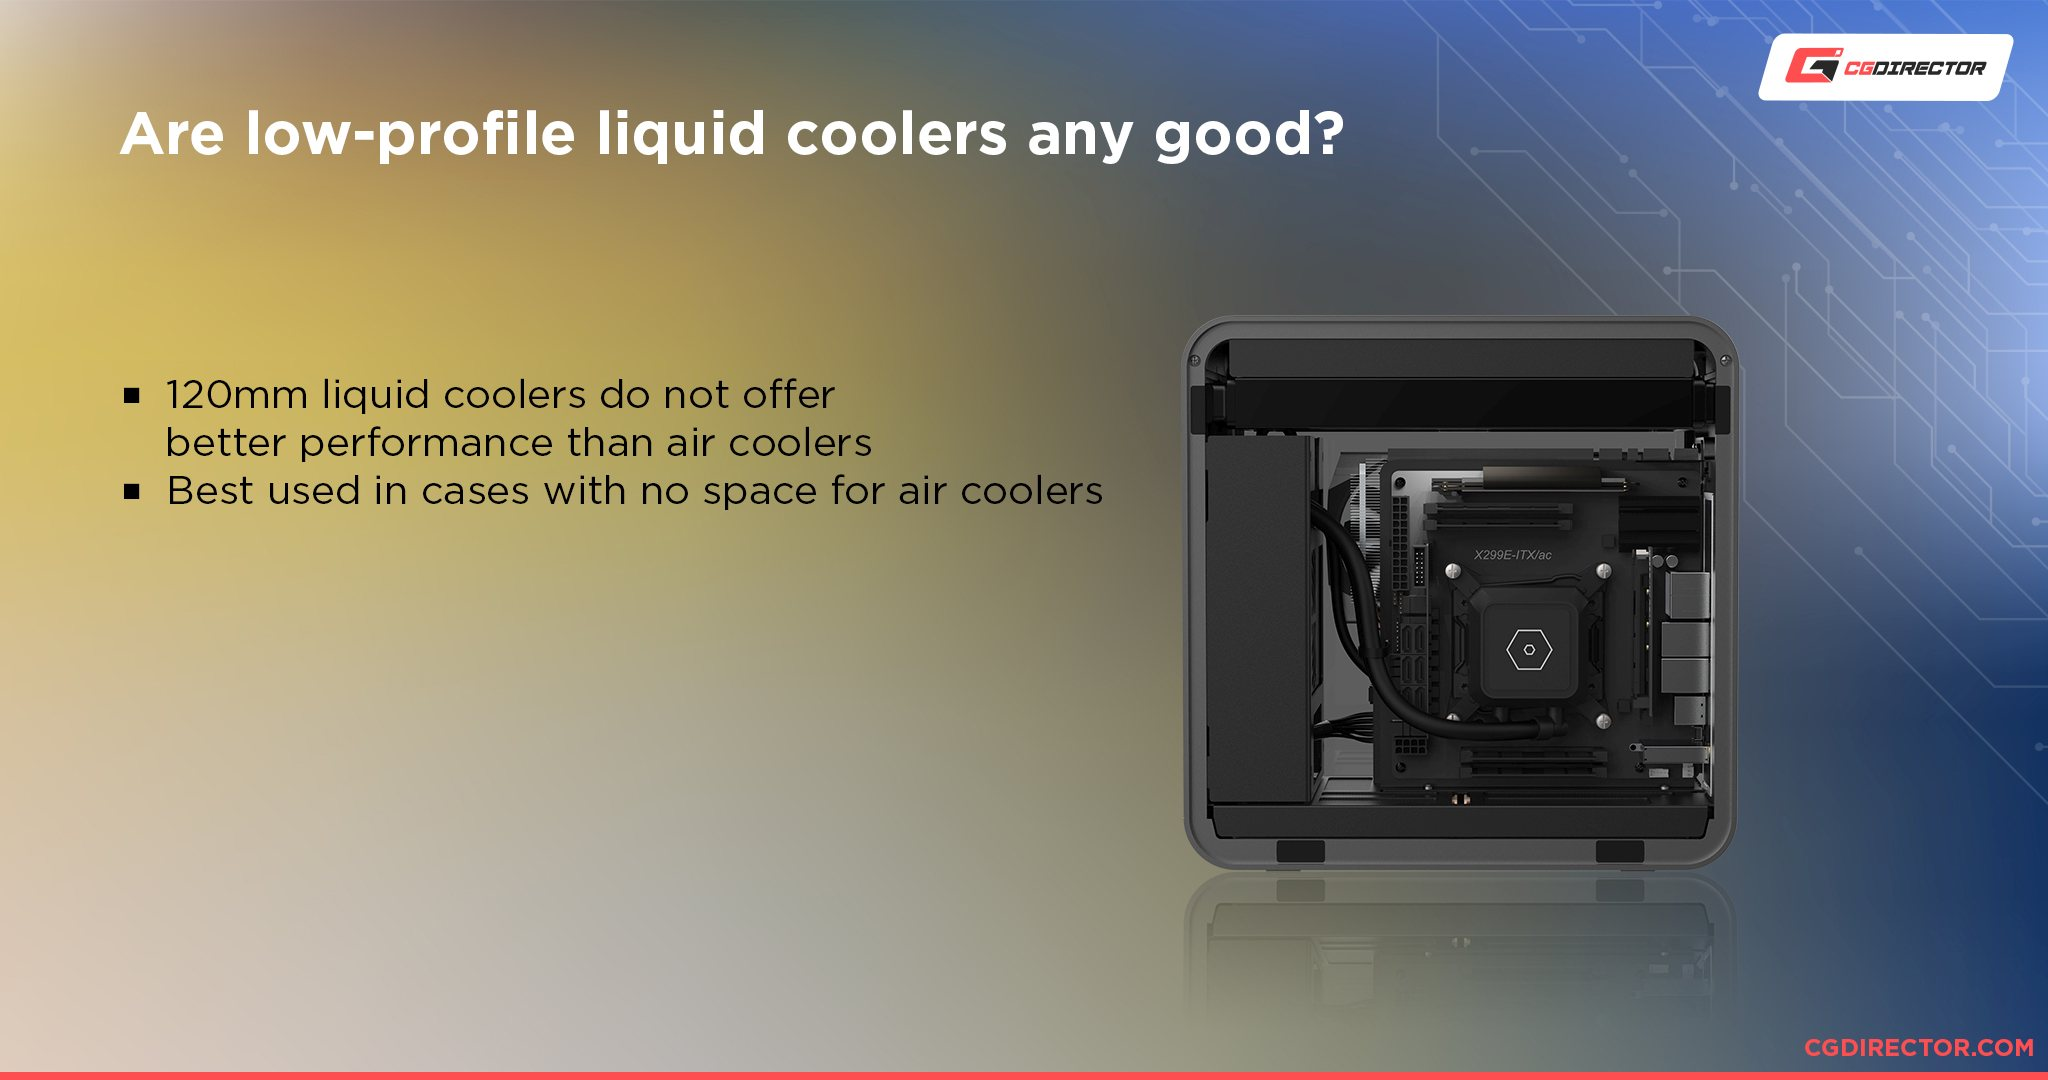 Are low-profile liquid coolers any good